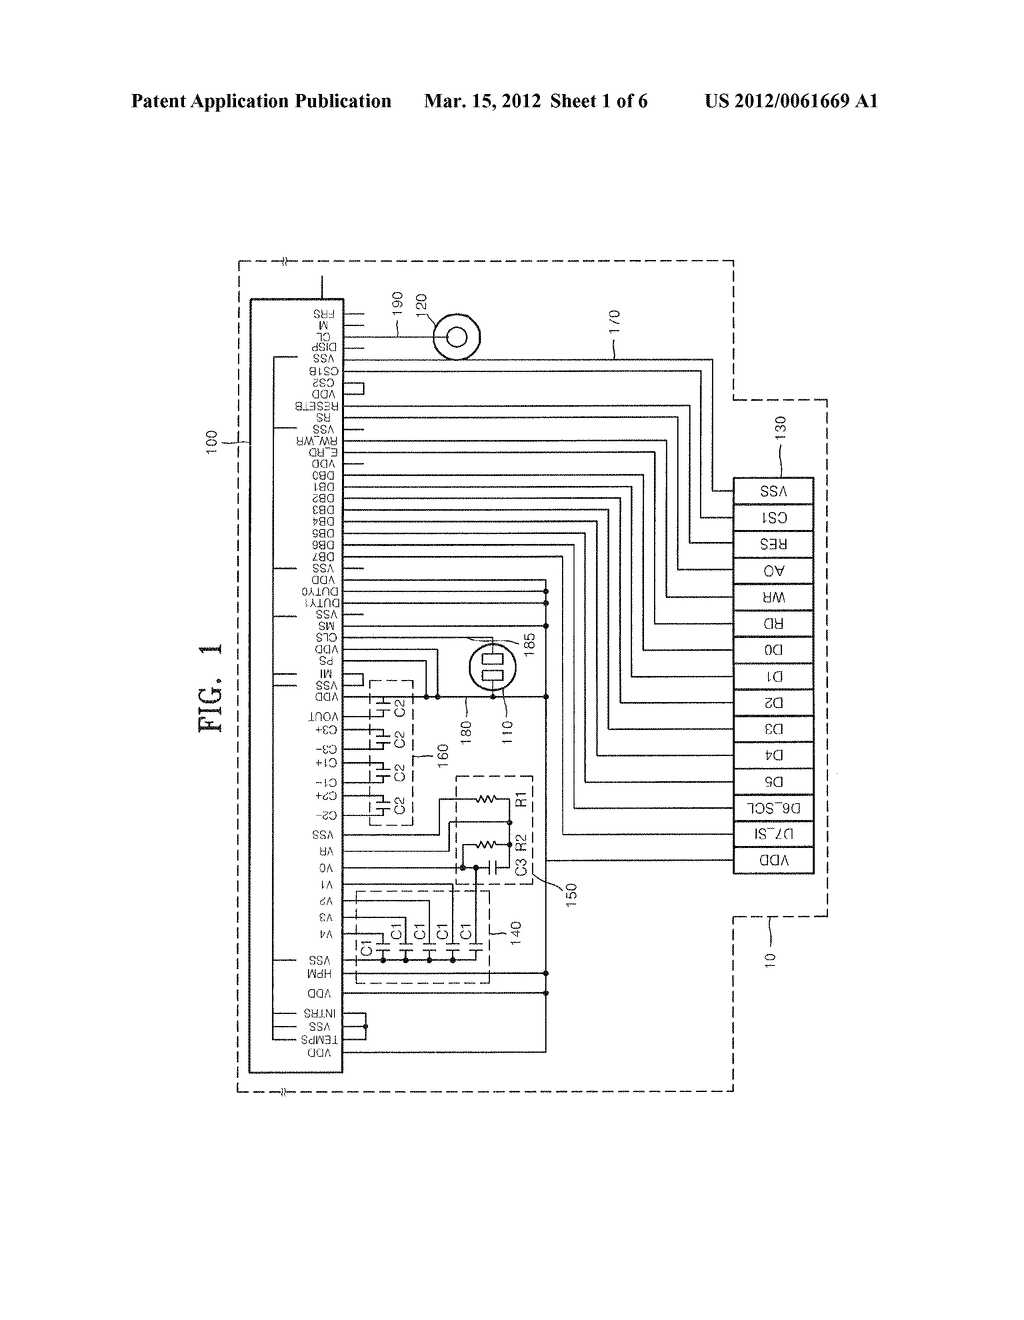 Test Electrical Schematic Trusted Wiring Diagrams Continuity Tester Circuit Diagram Eeweb Community Chip On Film Cof Package Having Line For Testing Hydraulic